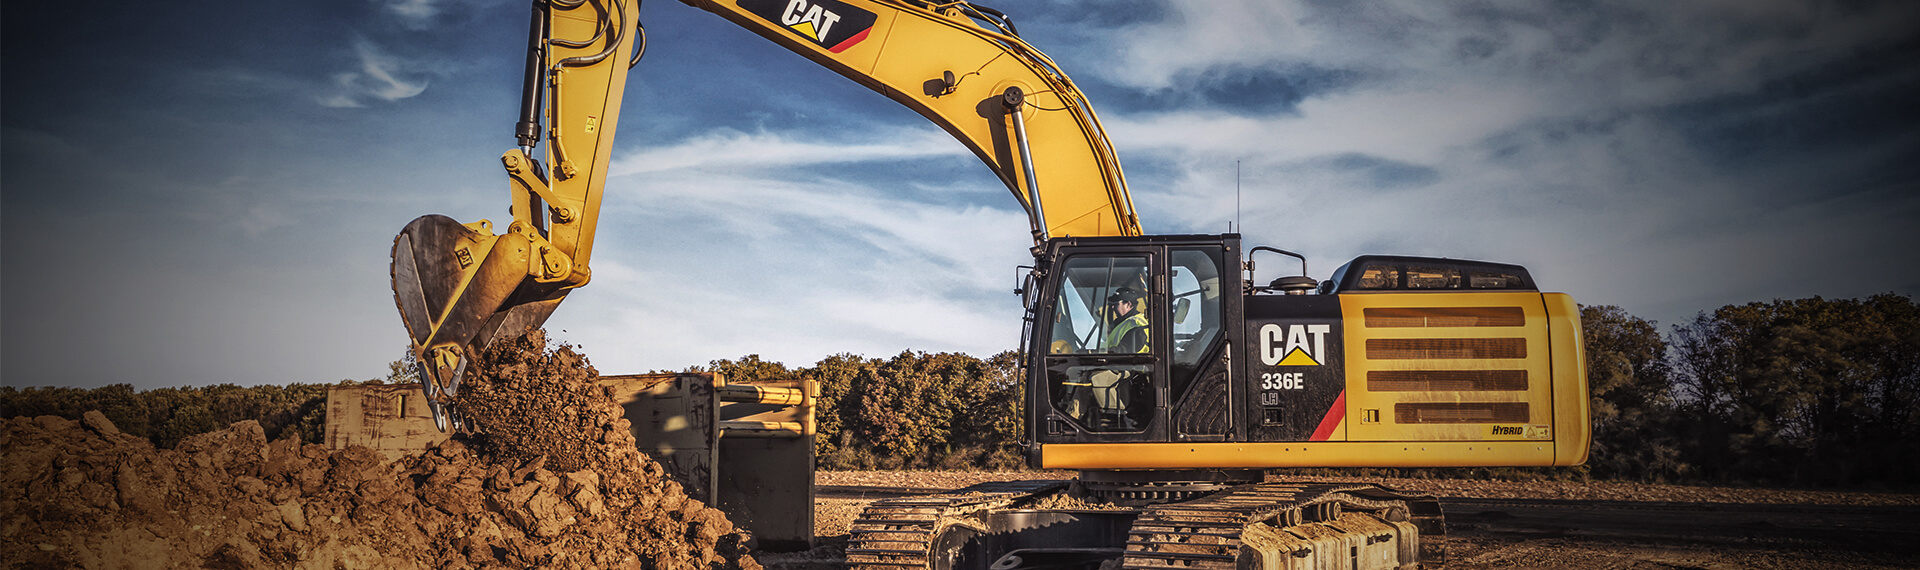 Whayne Walker Cat | Construction Equipment & Machines KY & IN